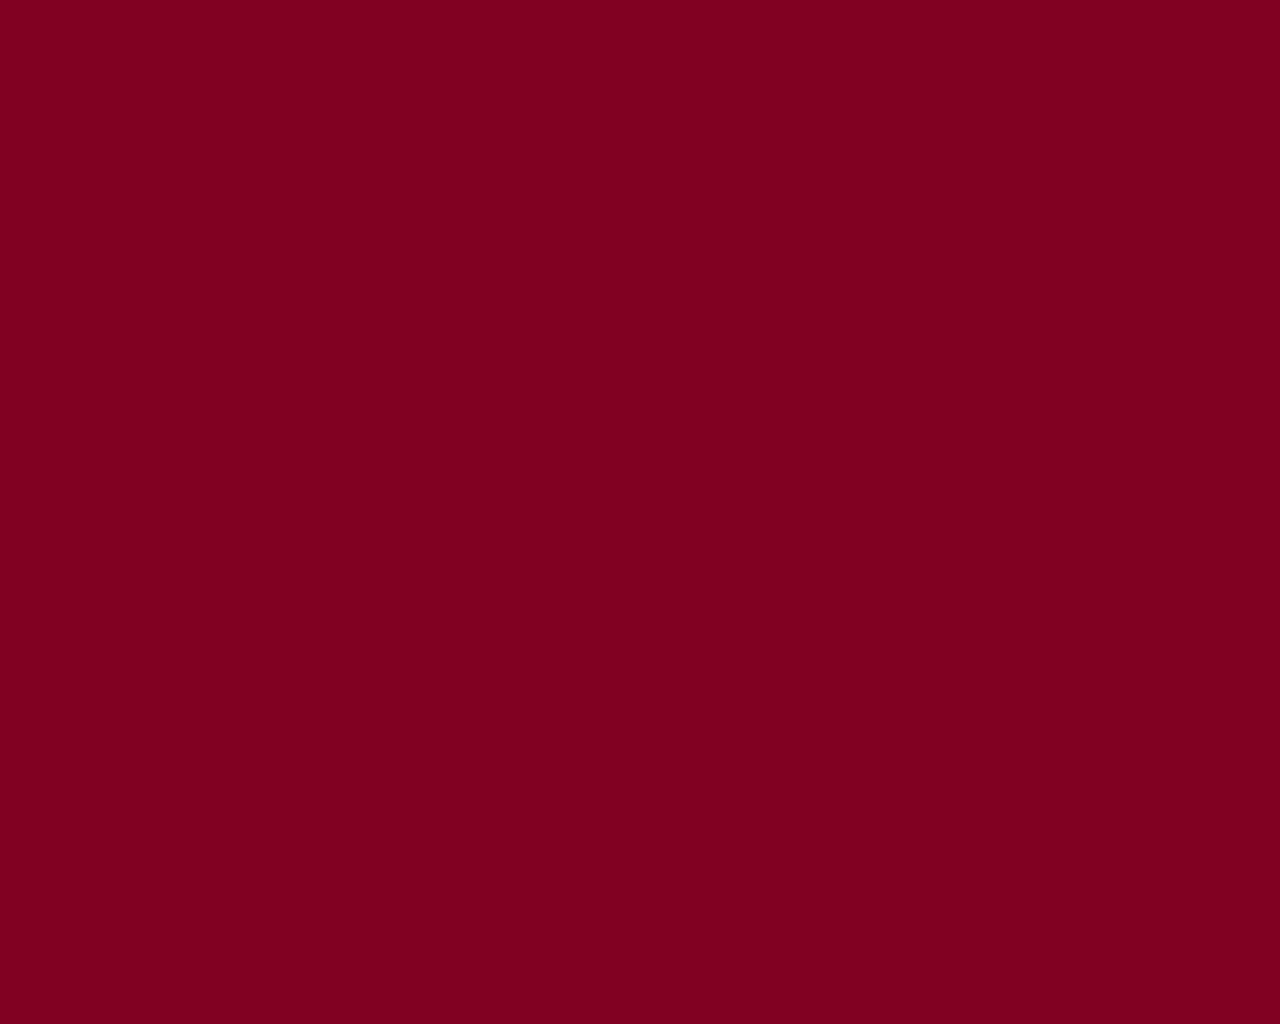 1280x1024 Burgundy Solid Color Background